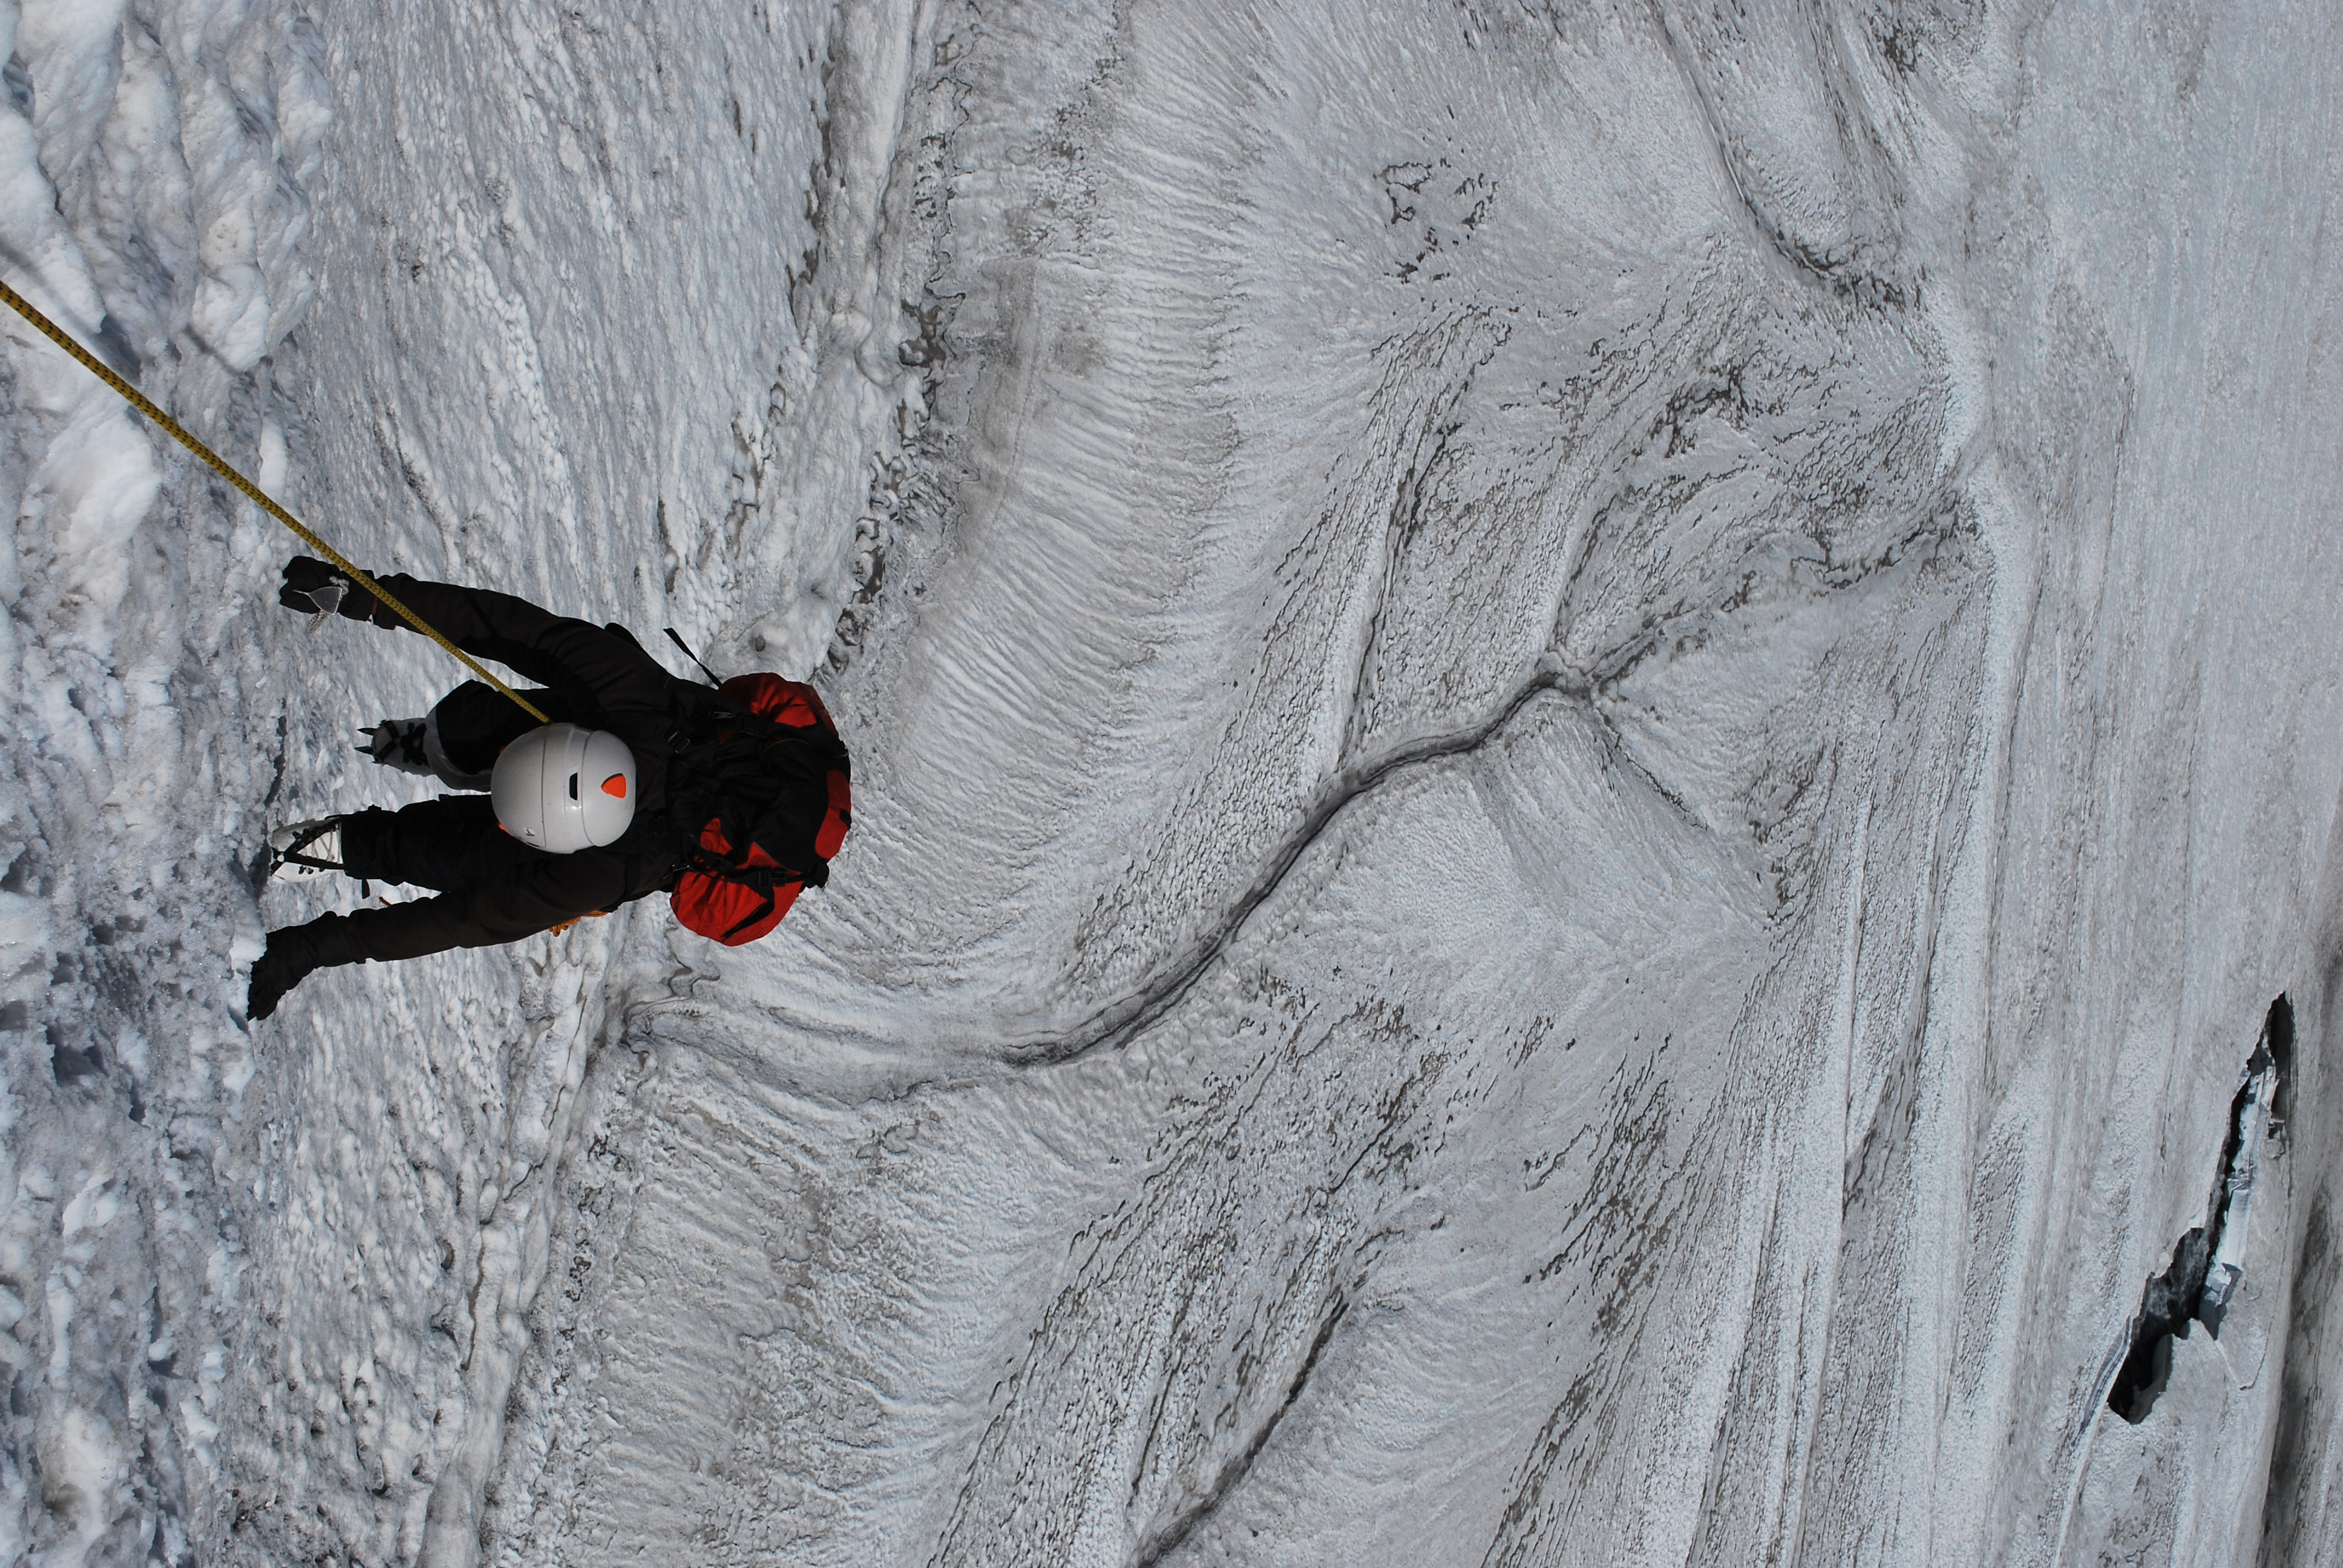 climbing on steep ice snow slope Mountain training.JPG